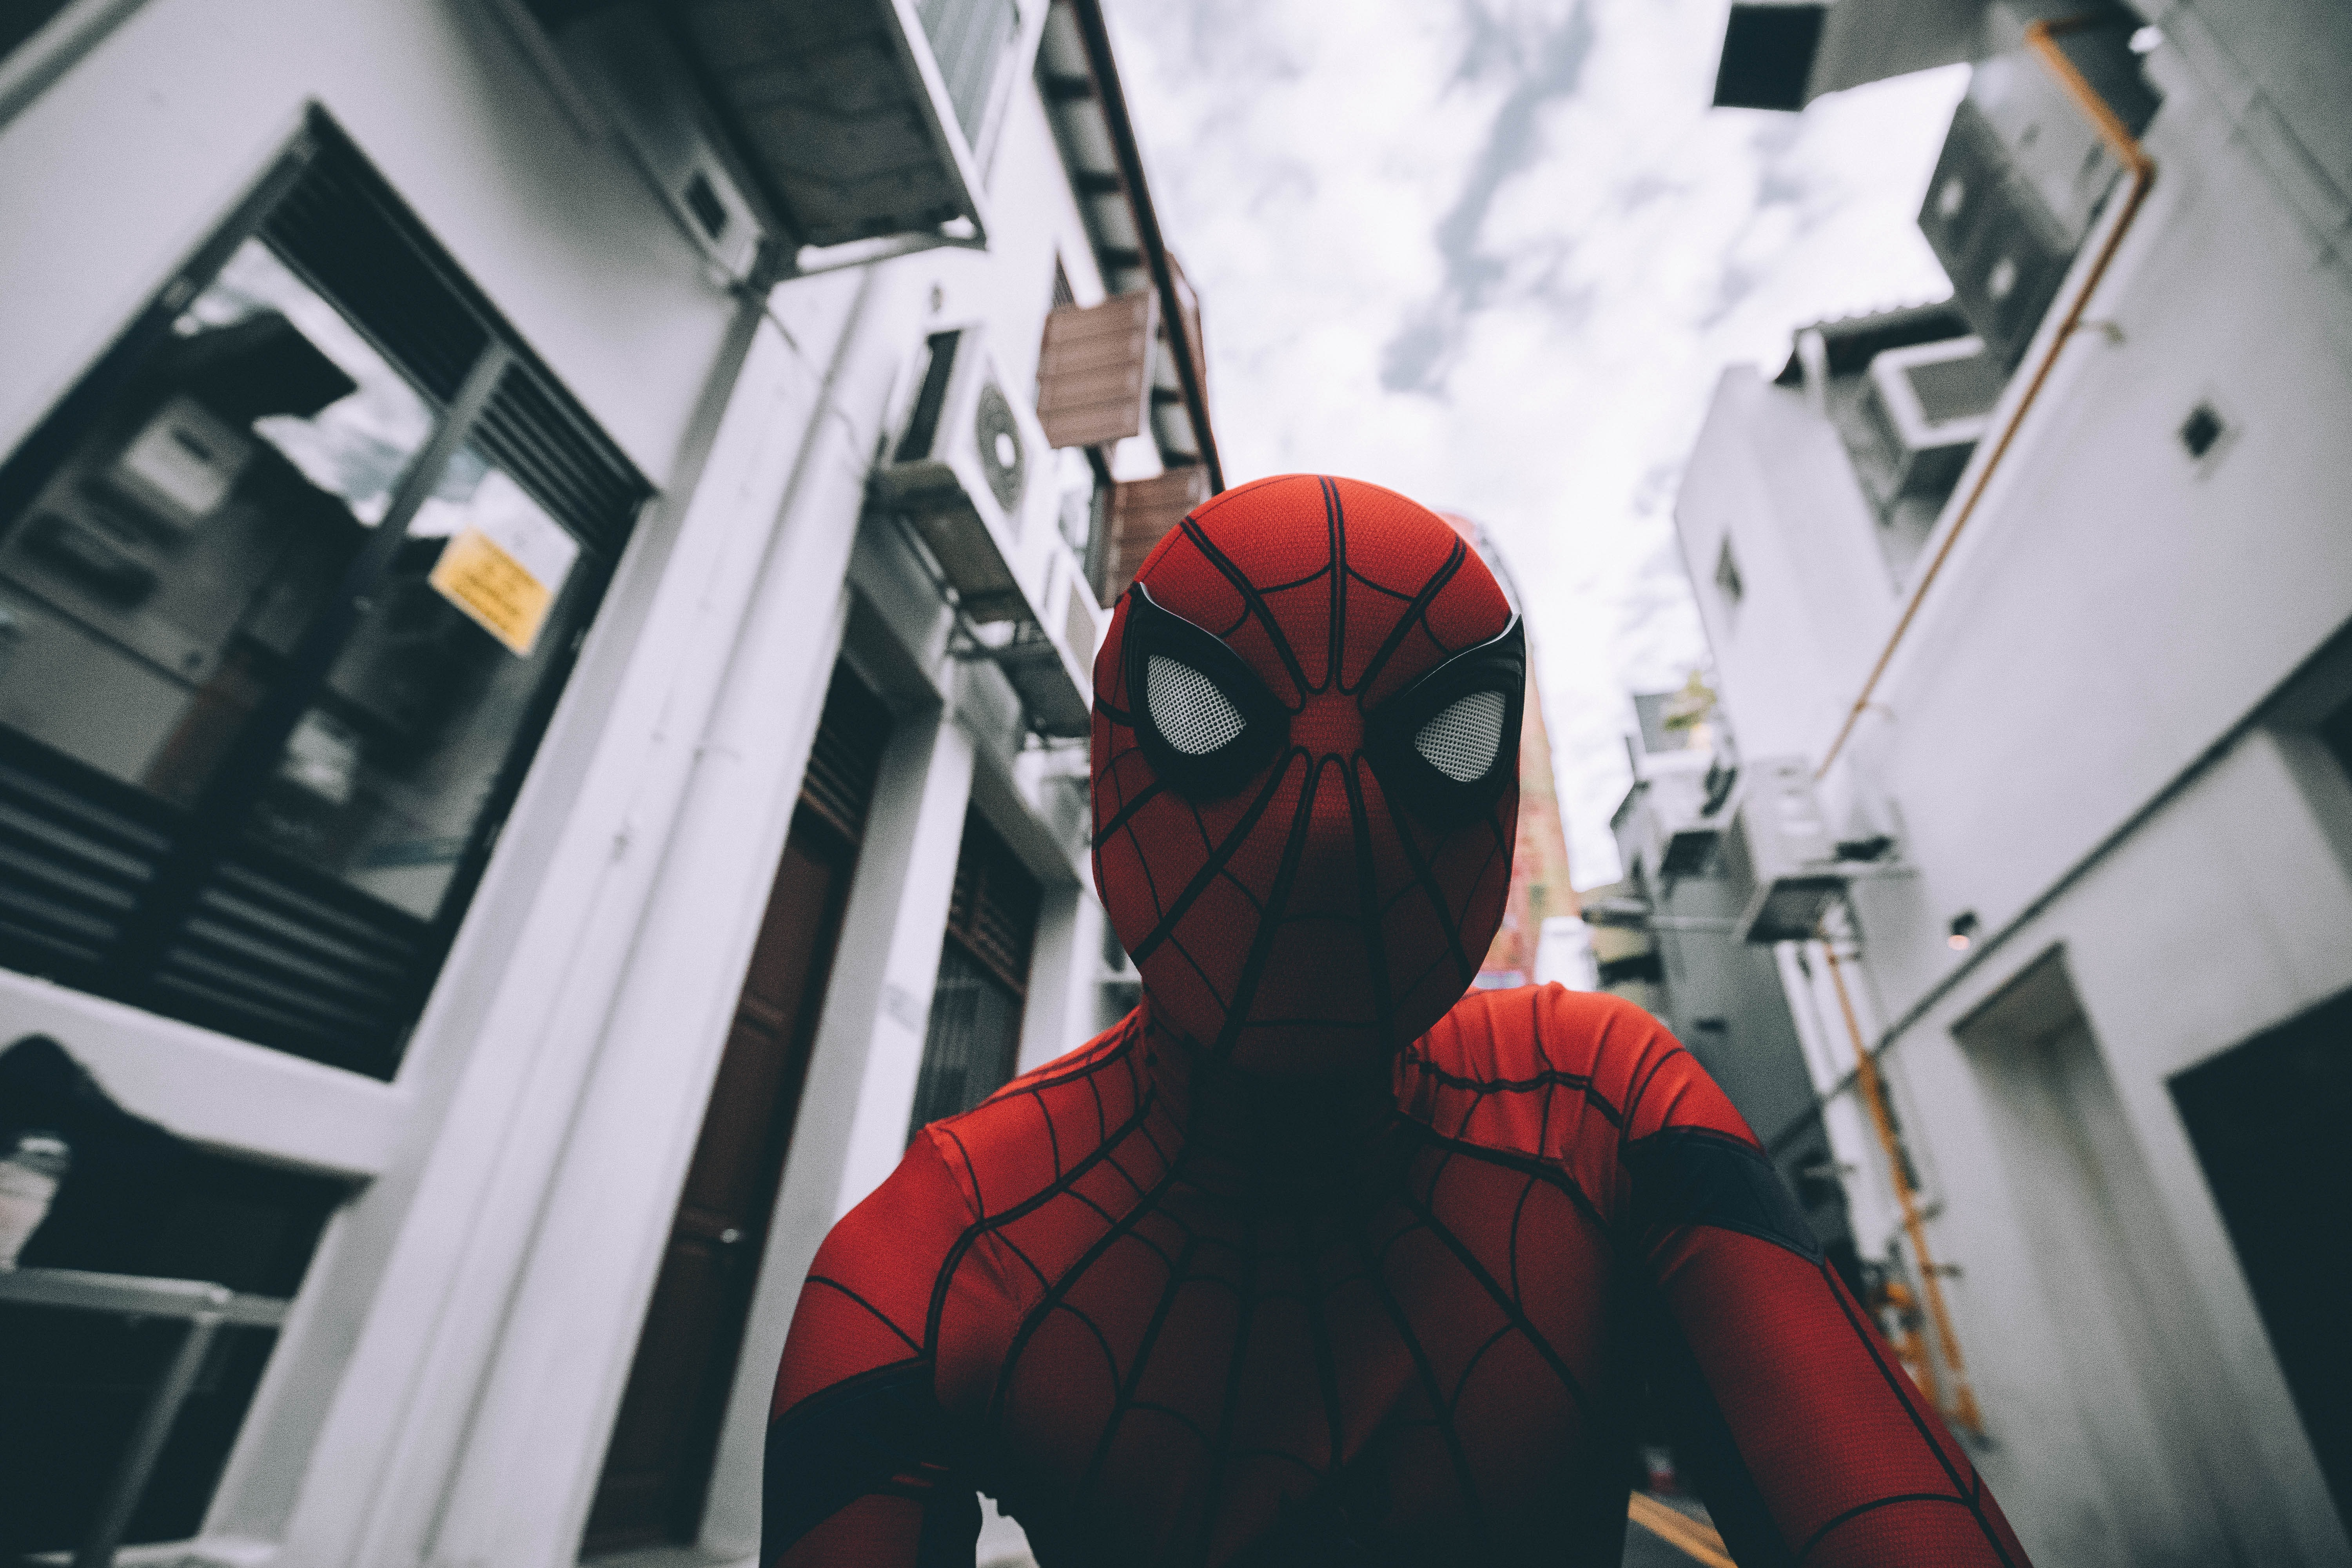 370e64a9 100+ Spiderman Pictures [HD] | Download Free Images on Unsplash